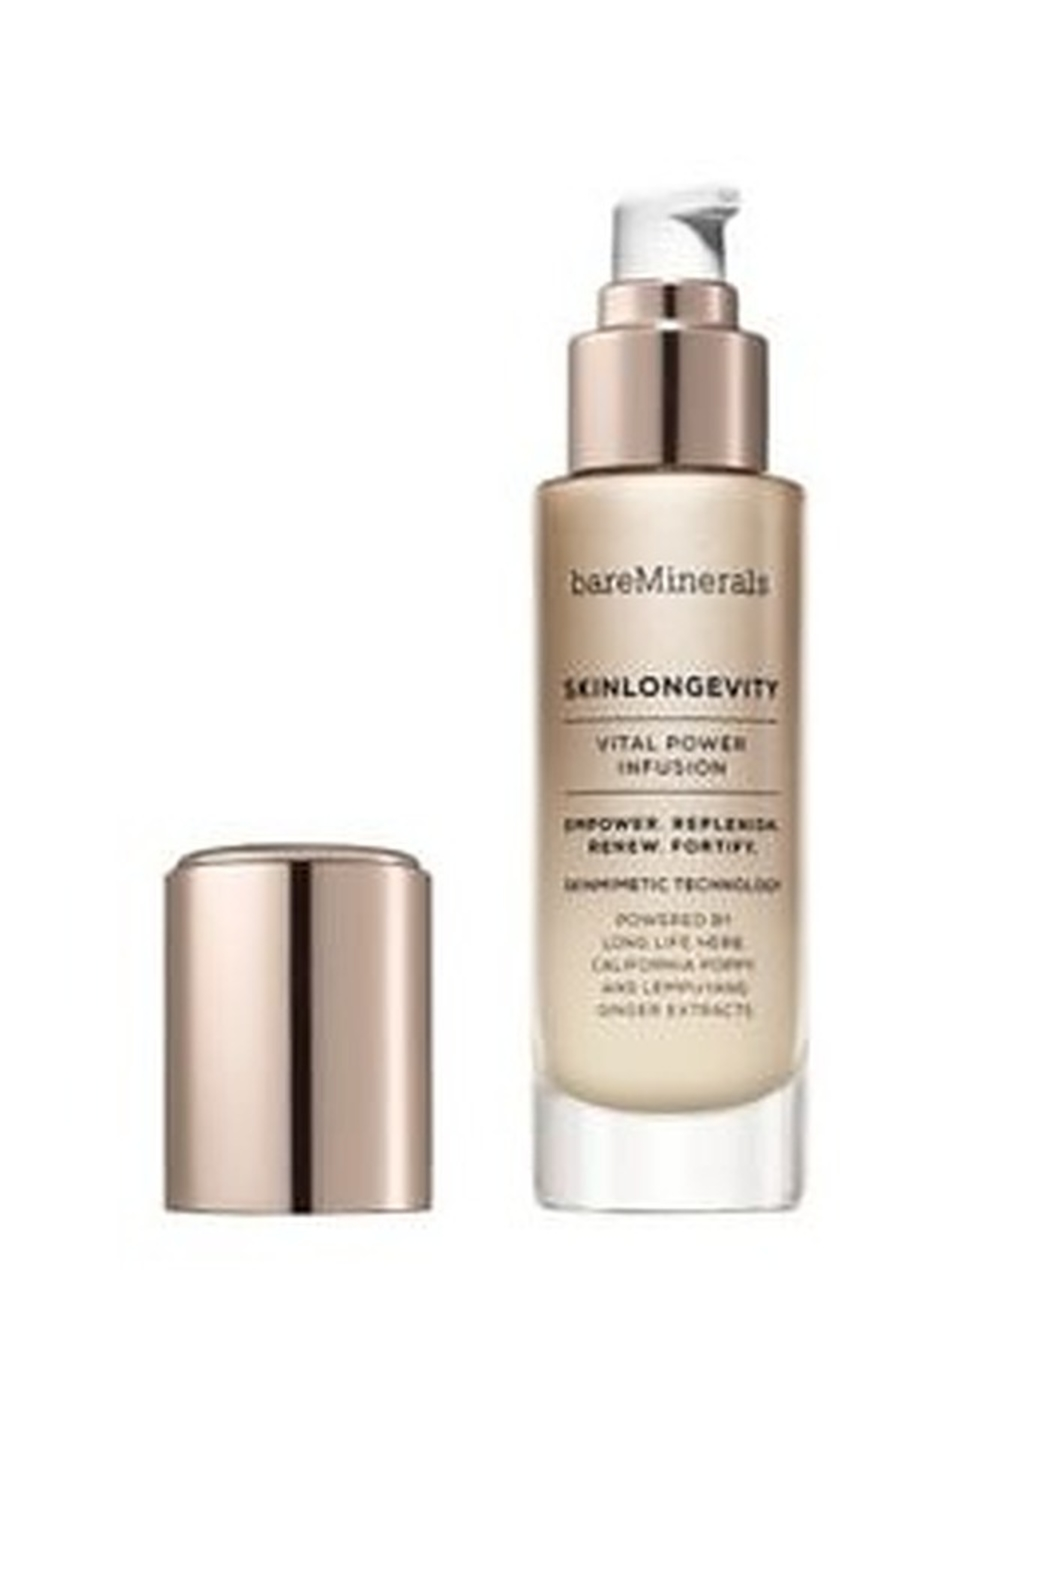 bareMinerals SKINLONGEVITY® VITAL POWER INFUSION SERUM 50ML Anti-Aging Infusion Serum - Main Image